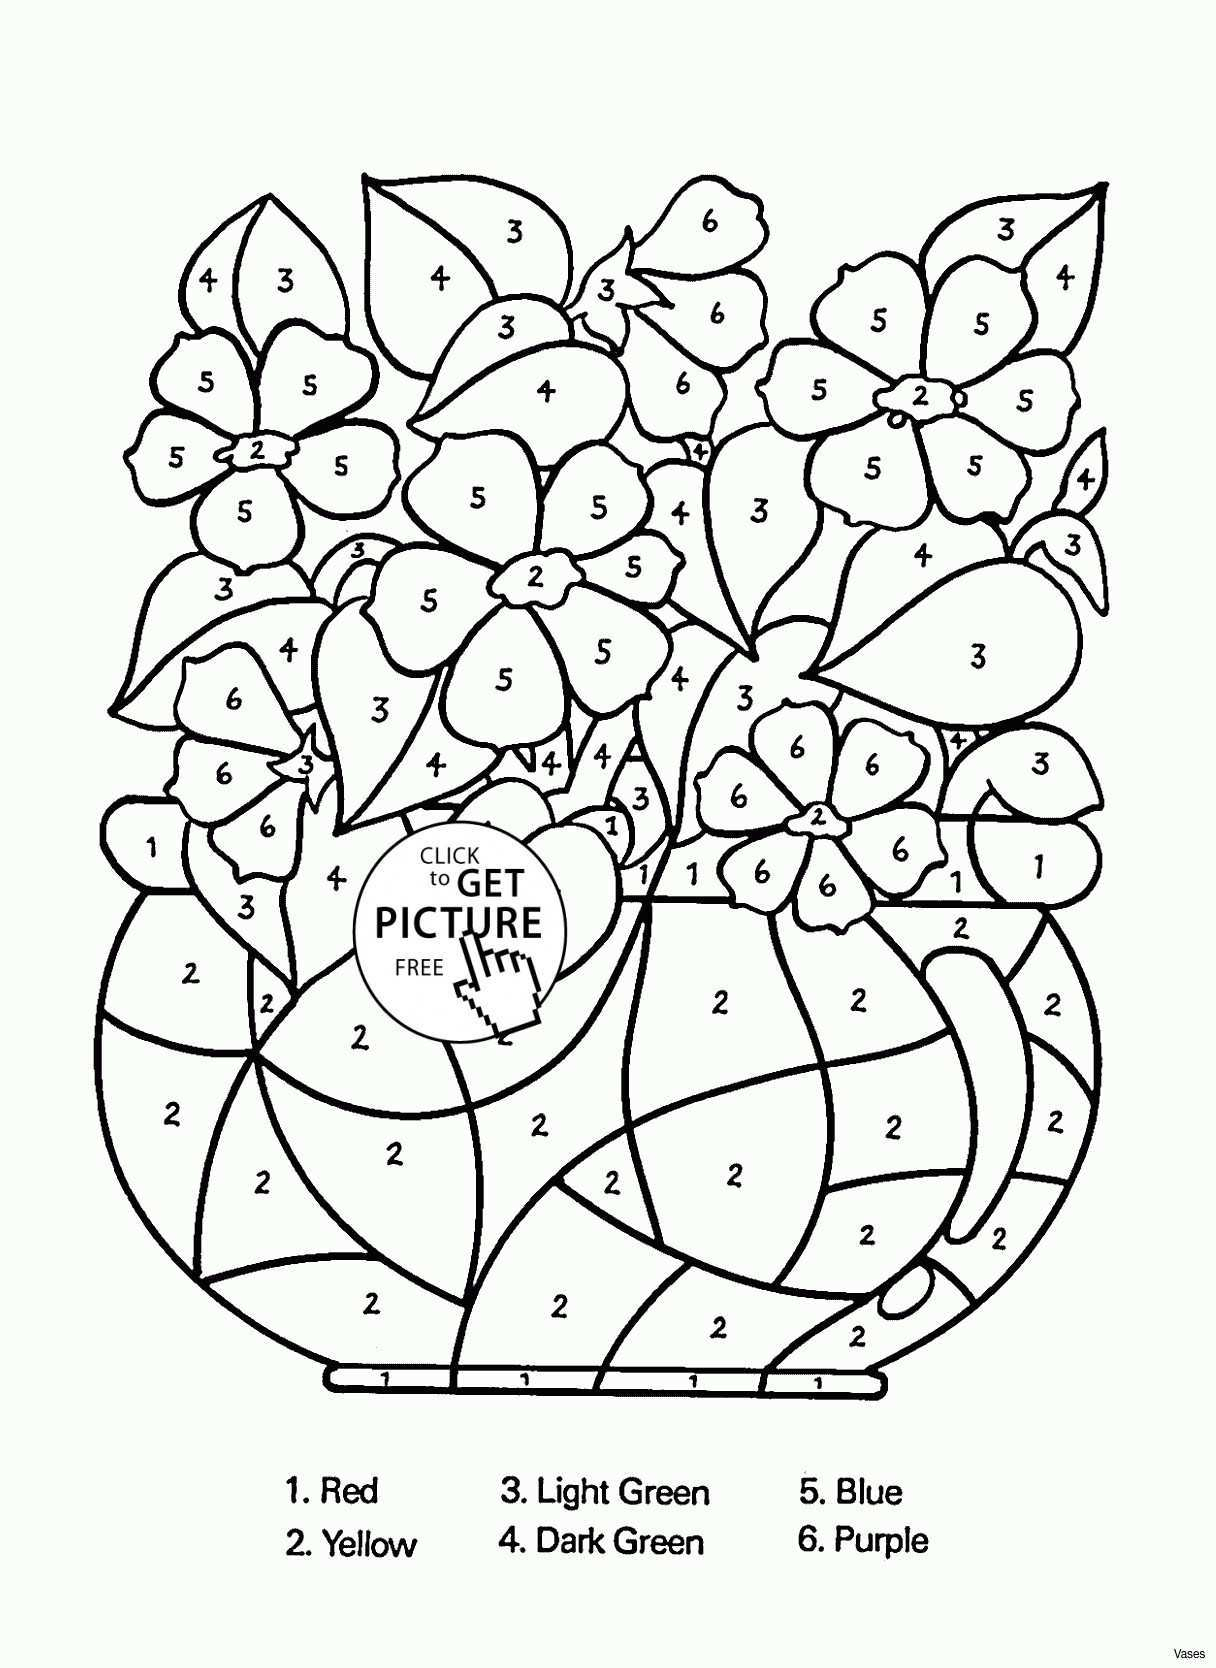 Coloring Pages : Coloring Pages Free Printable Bible With Verses - Free Printable Bible Coloring Pages With Scriptures